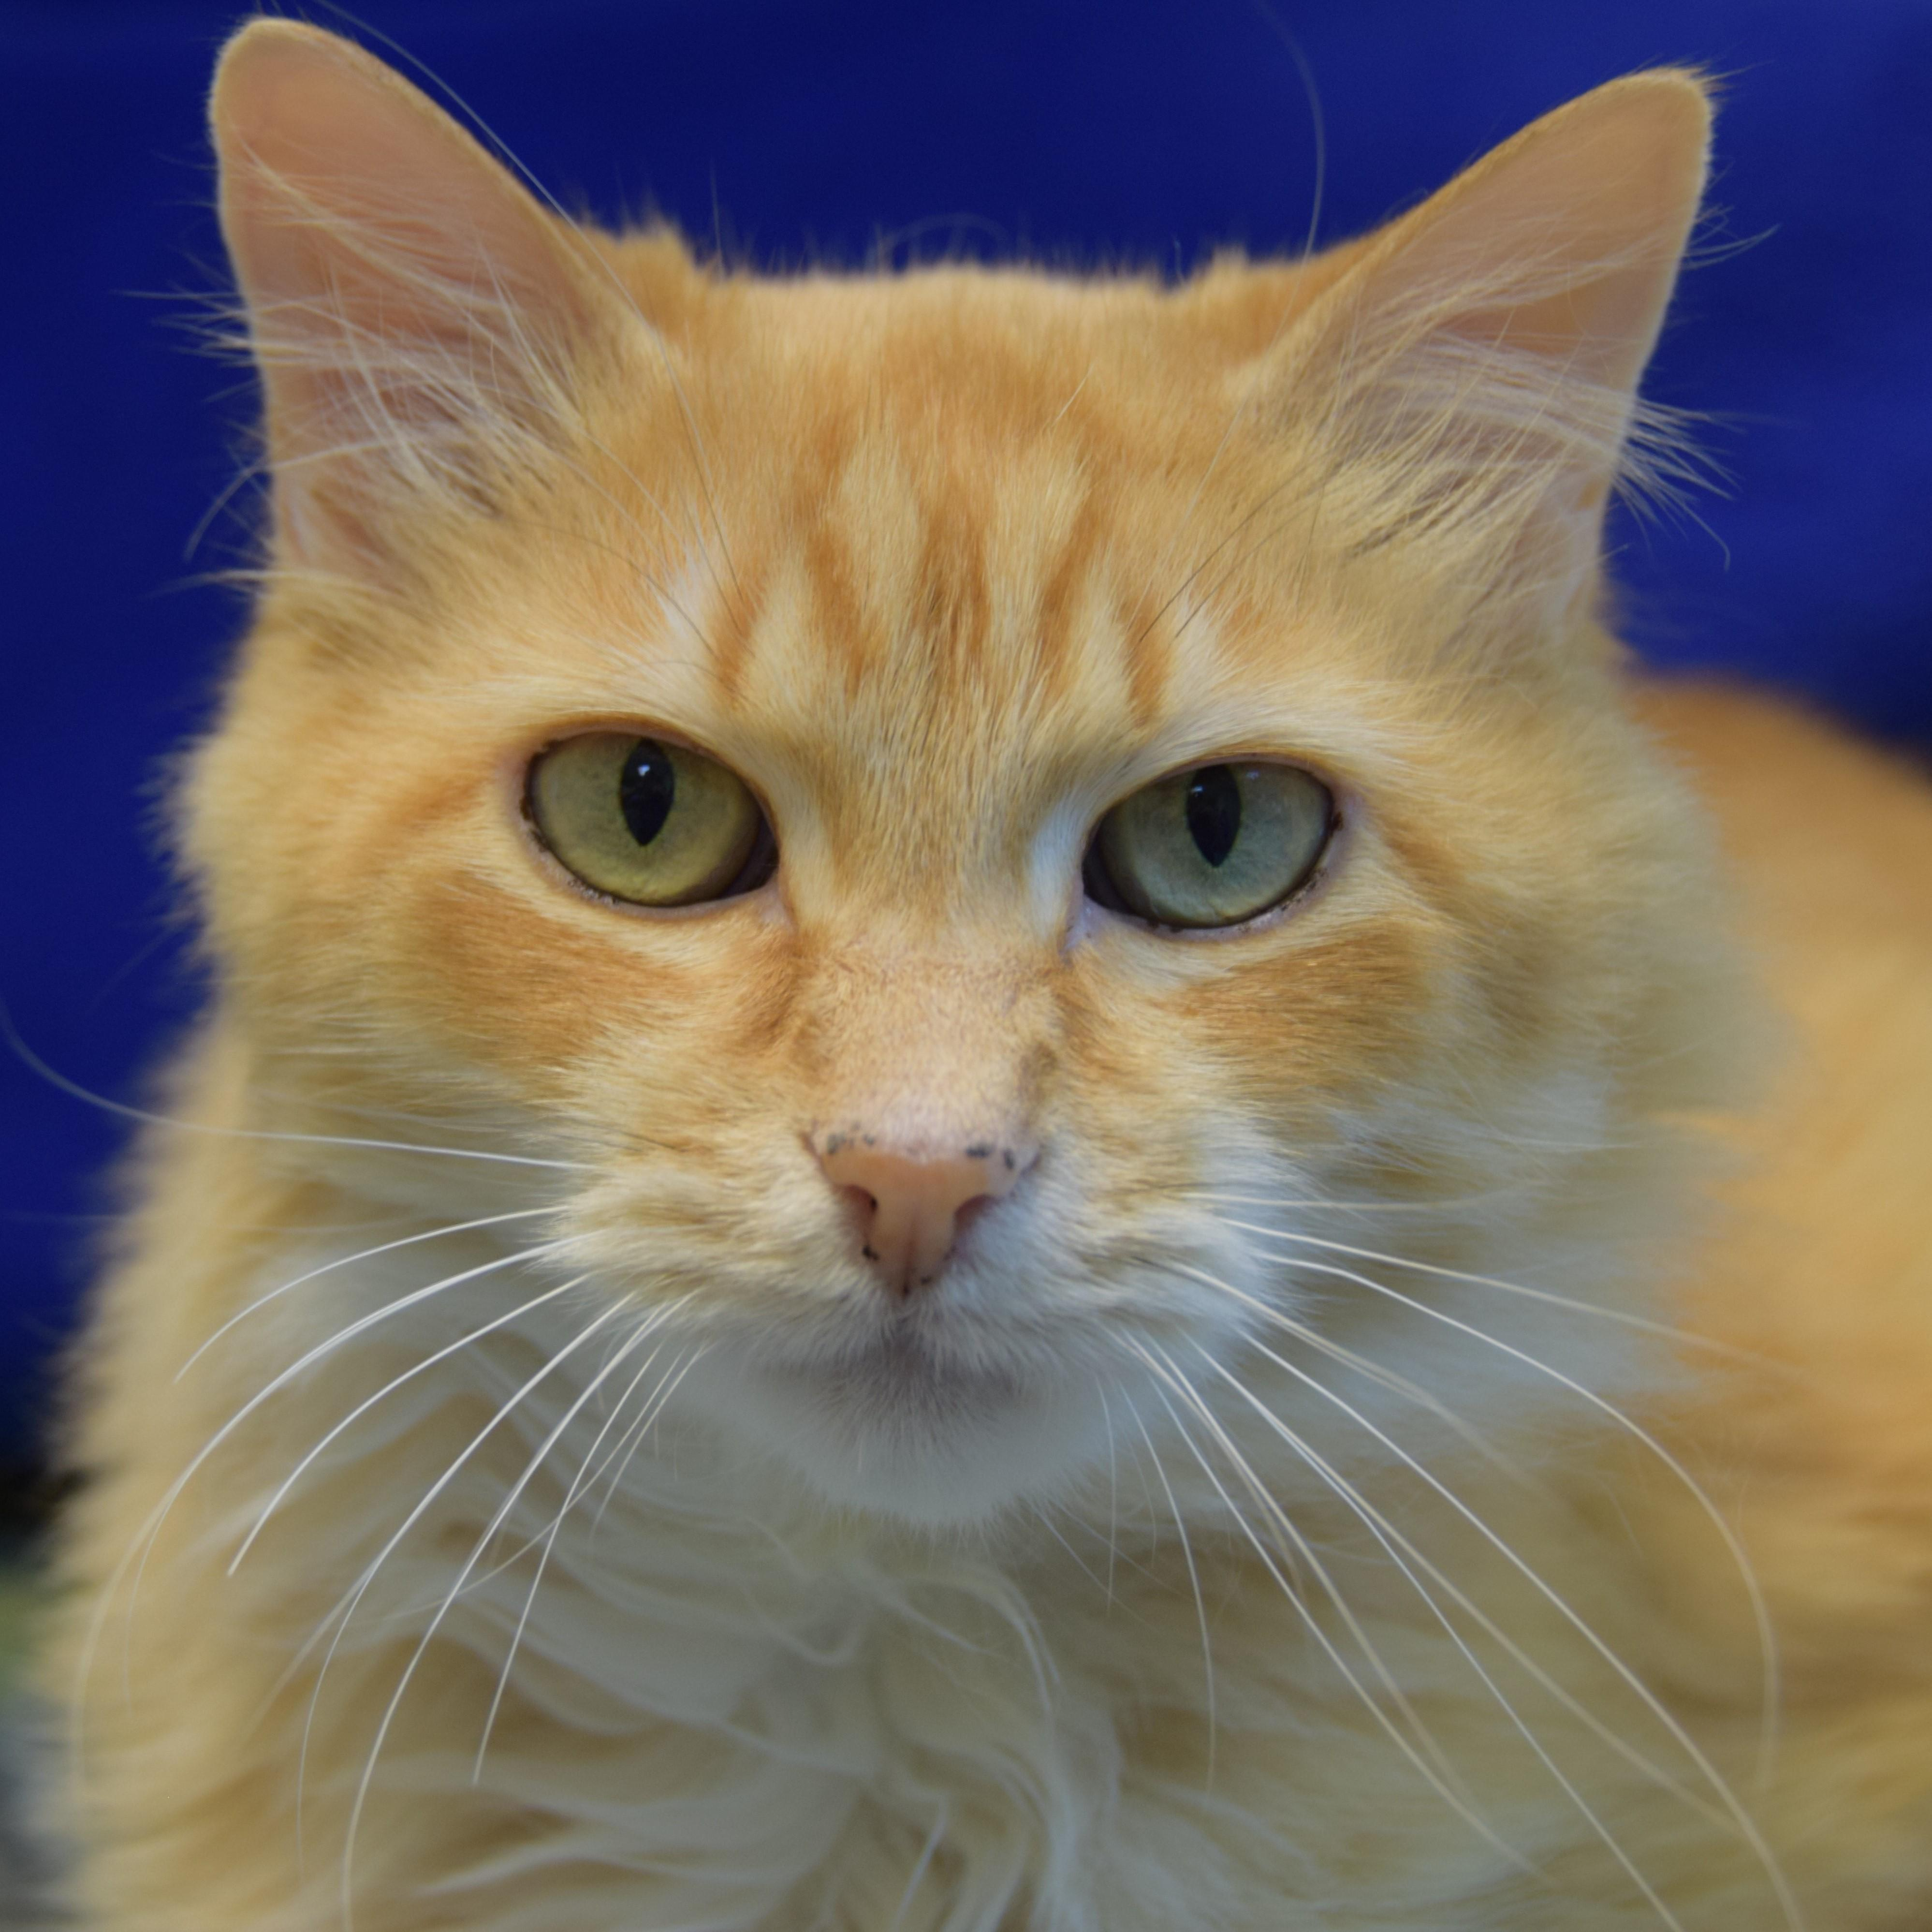 Greetings! I'm Chester, a 10-year-old domestic long-haired boy with a lot of stories to share! I'm described as an old, quiet soul and I can't wait to join your quiet, calm home with older teens and adults to match. Come say hi today – I want to charm my way into your heart!